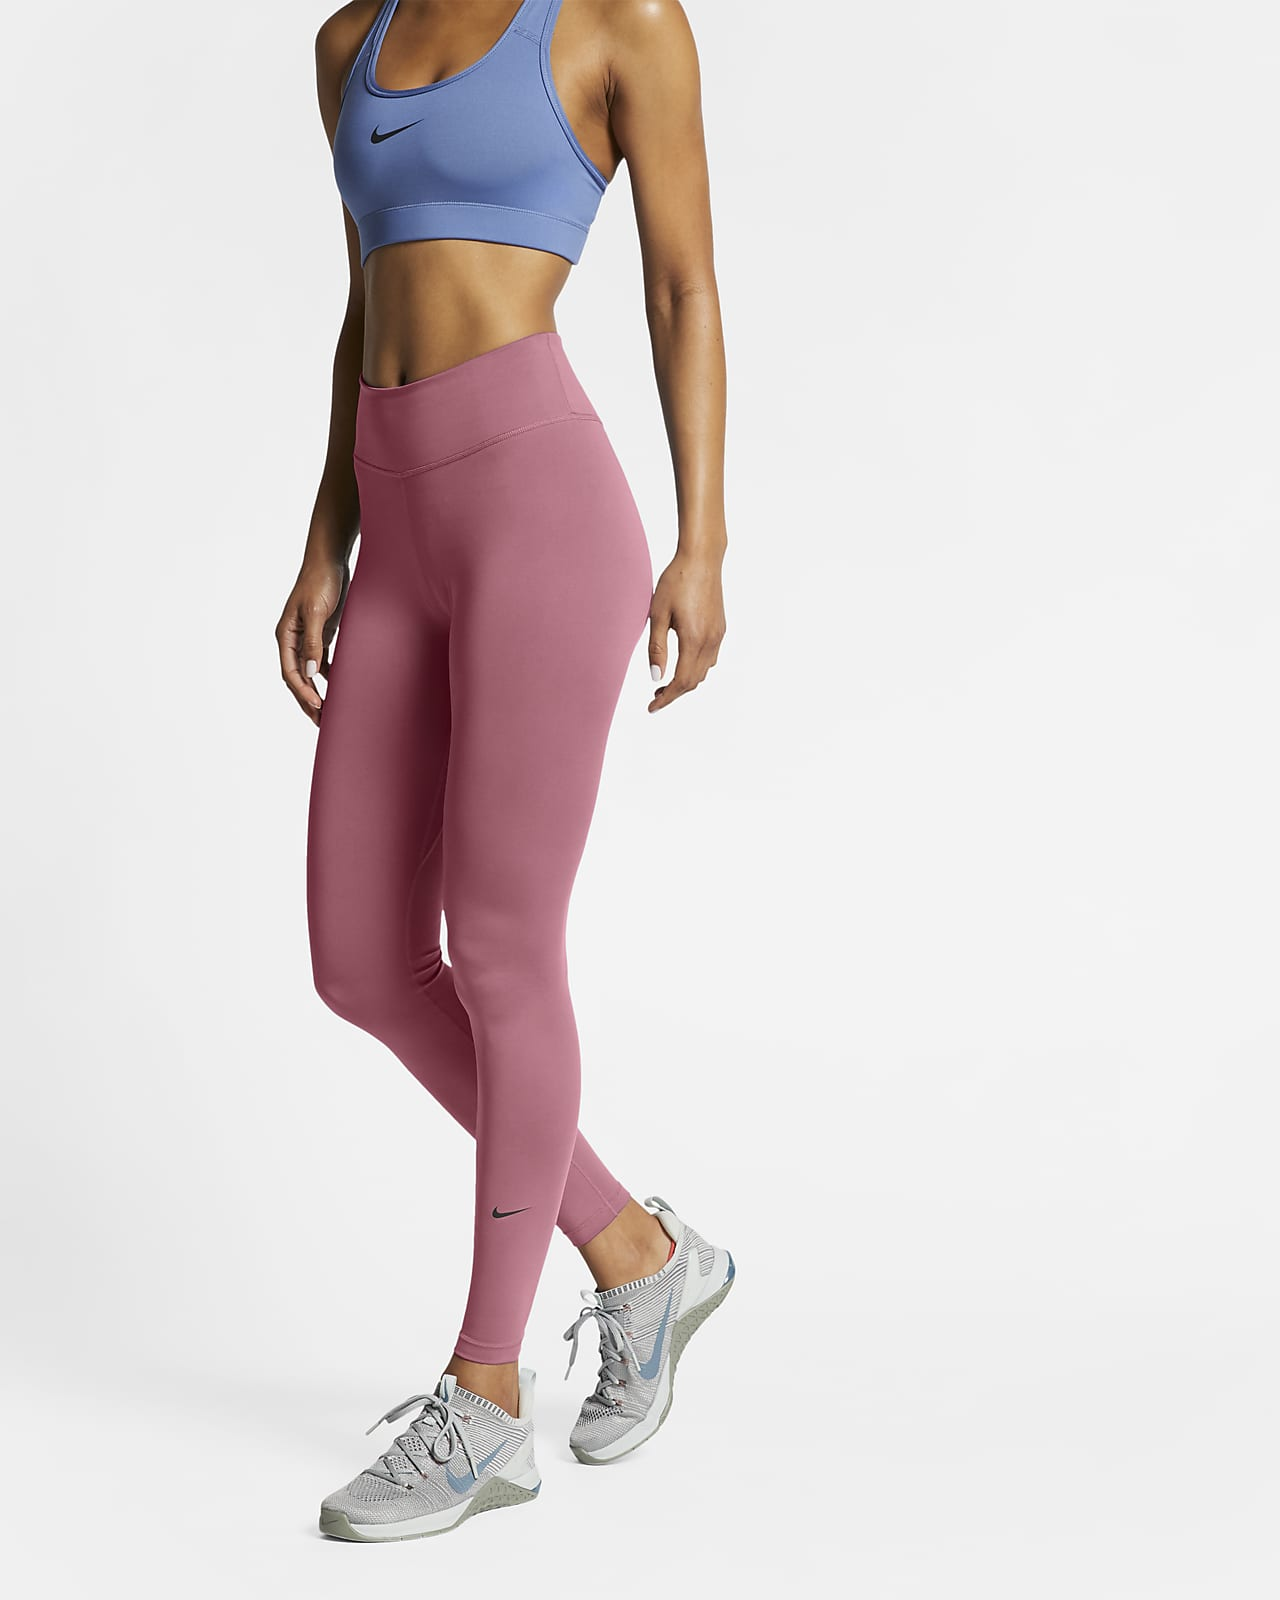 Legging taille mi basse Nike One pour Femme